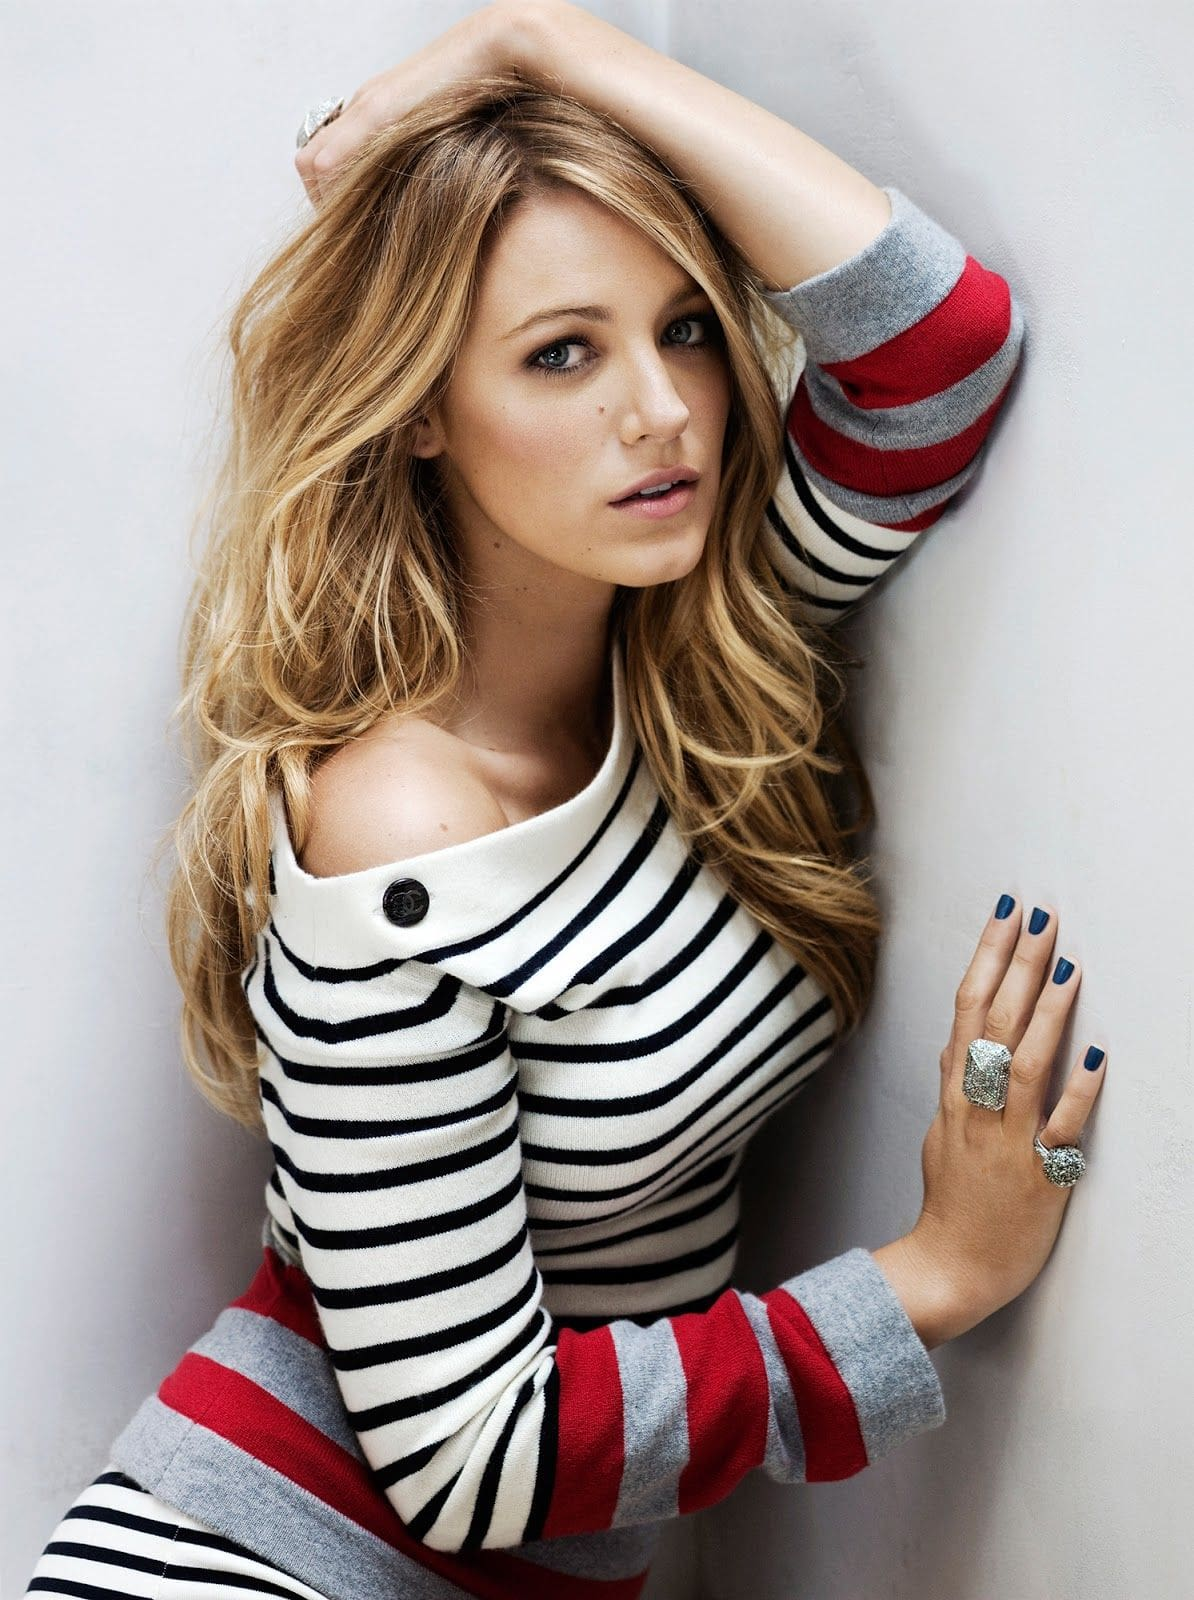 Blake-Lively-Stylish-Photoshoot